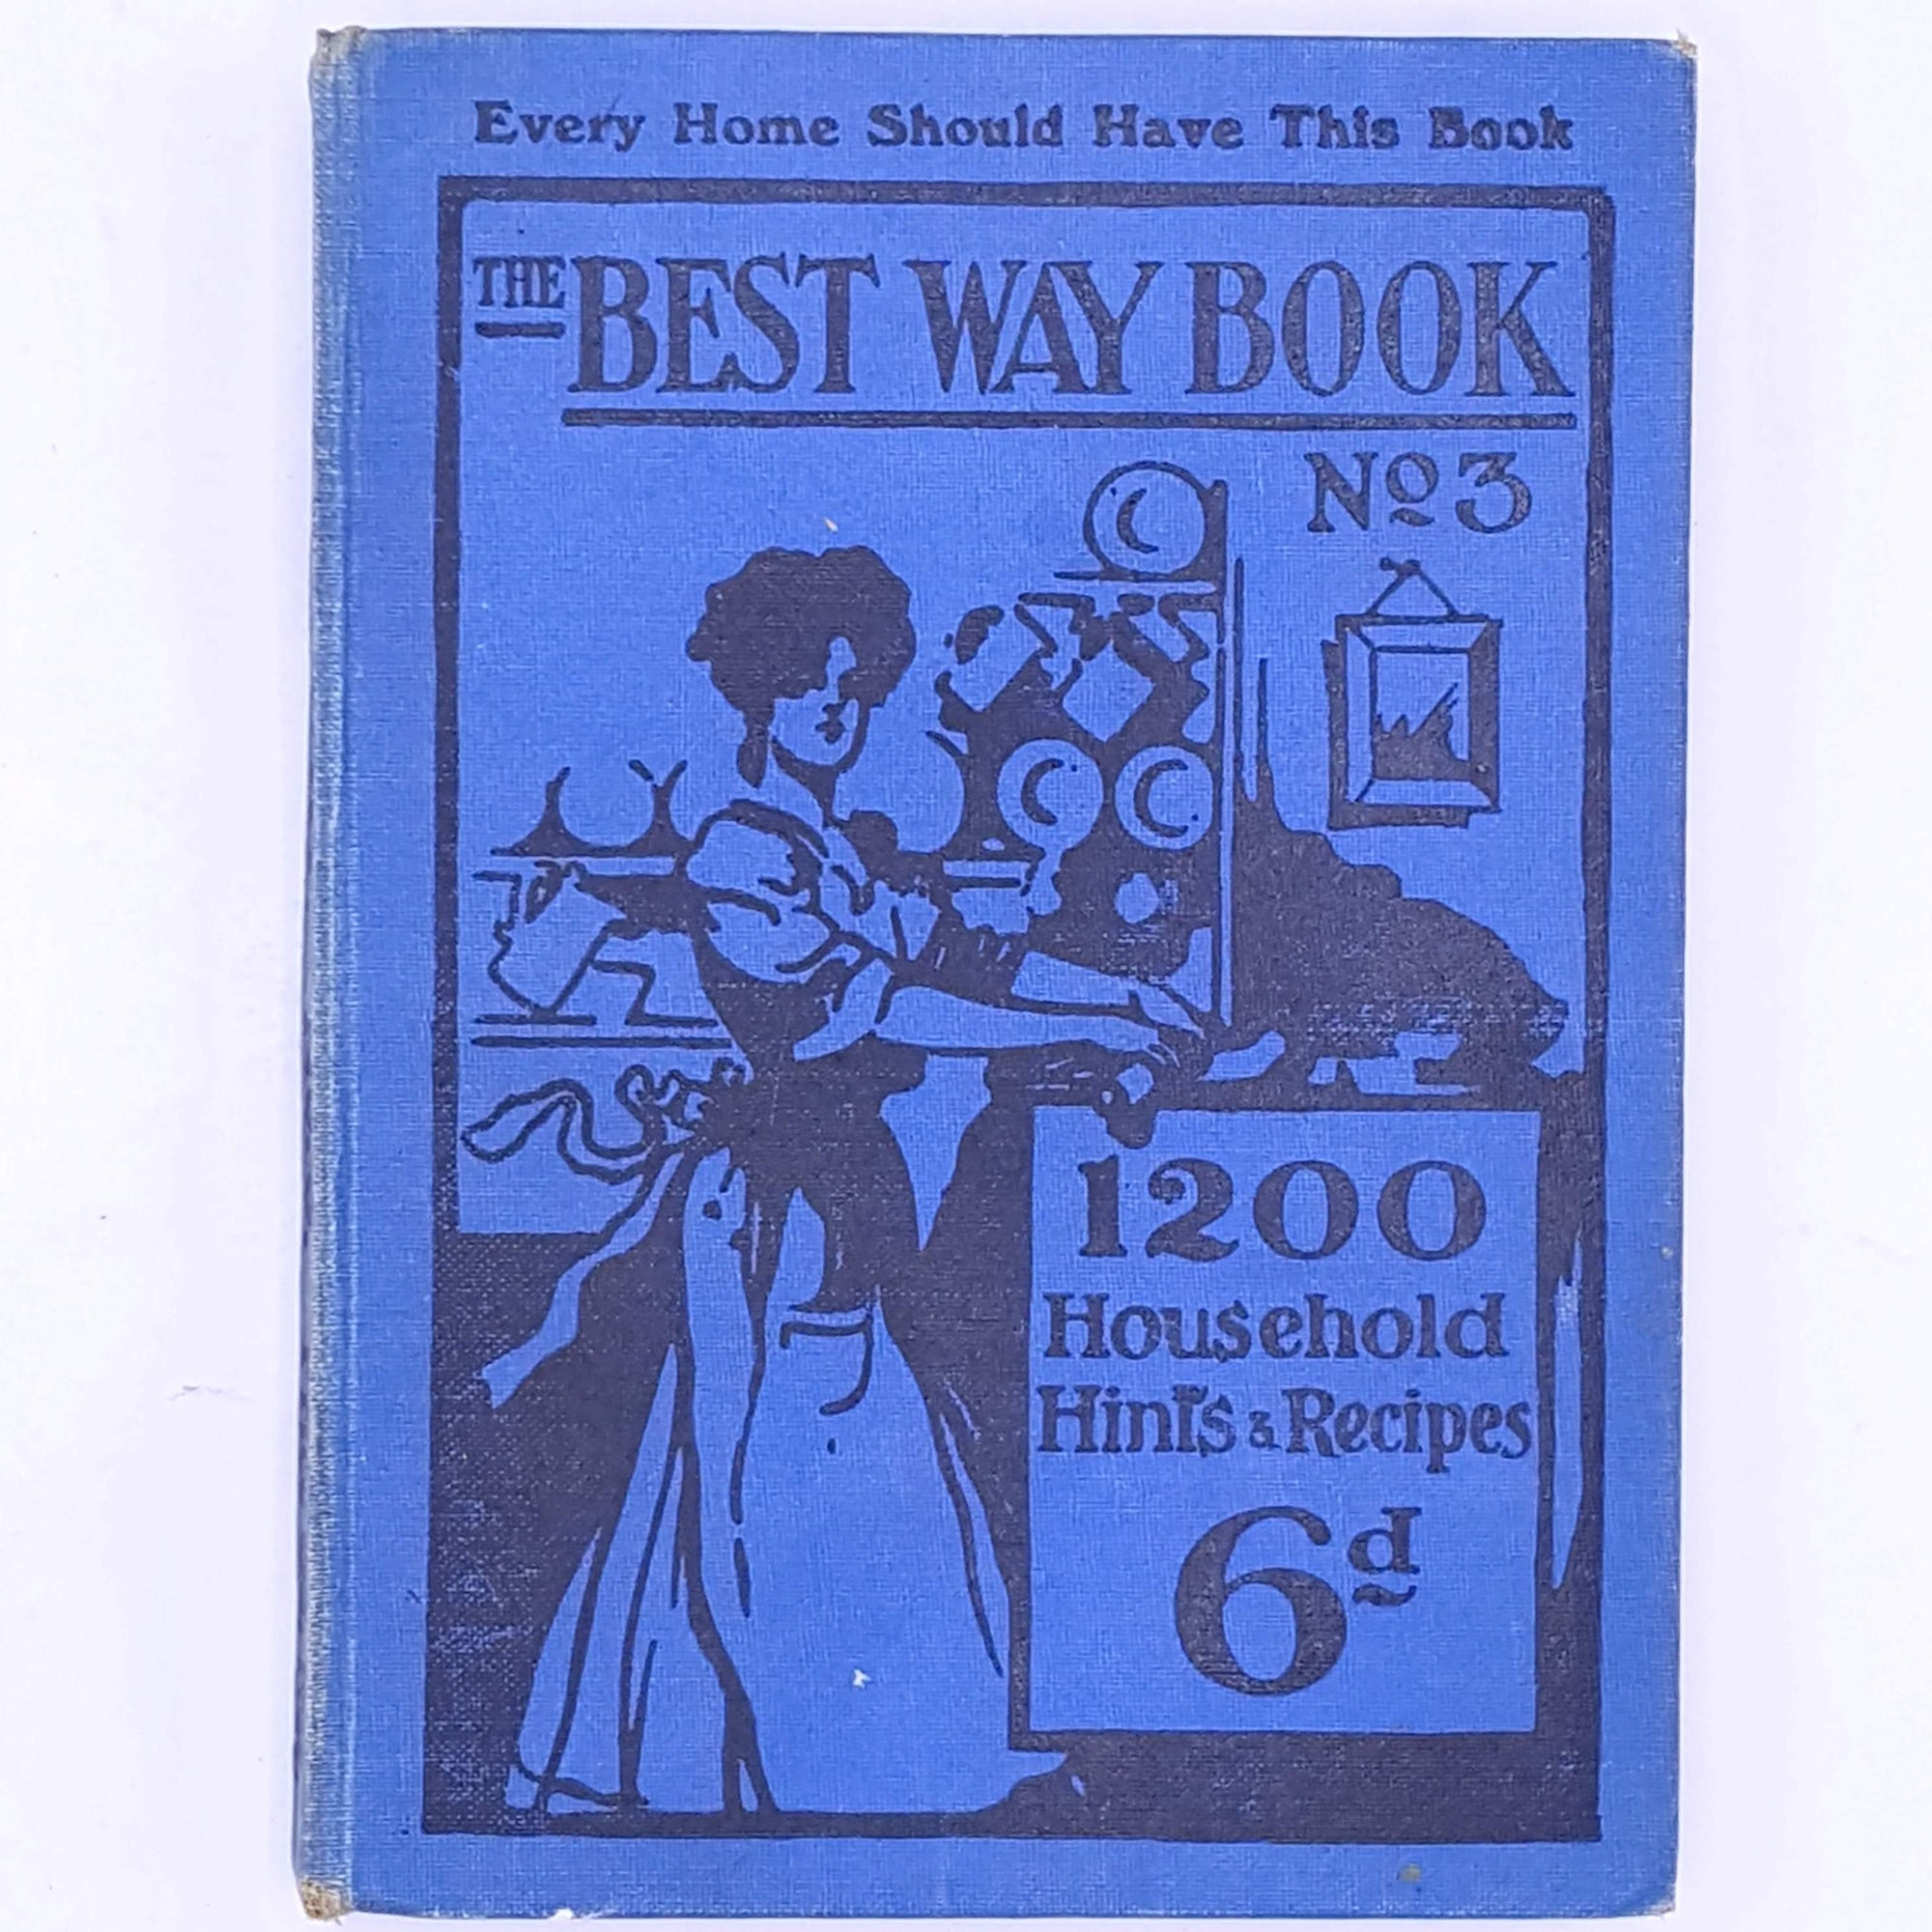 The Best Way Book No 3